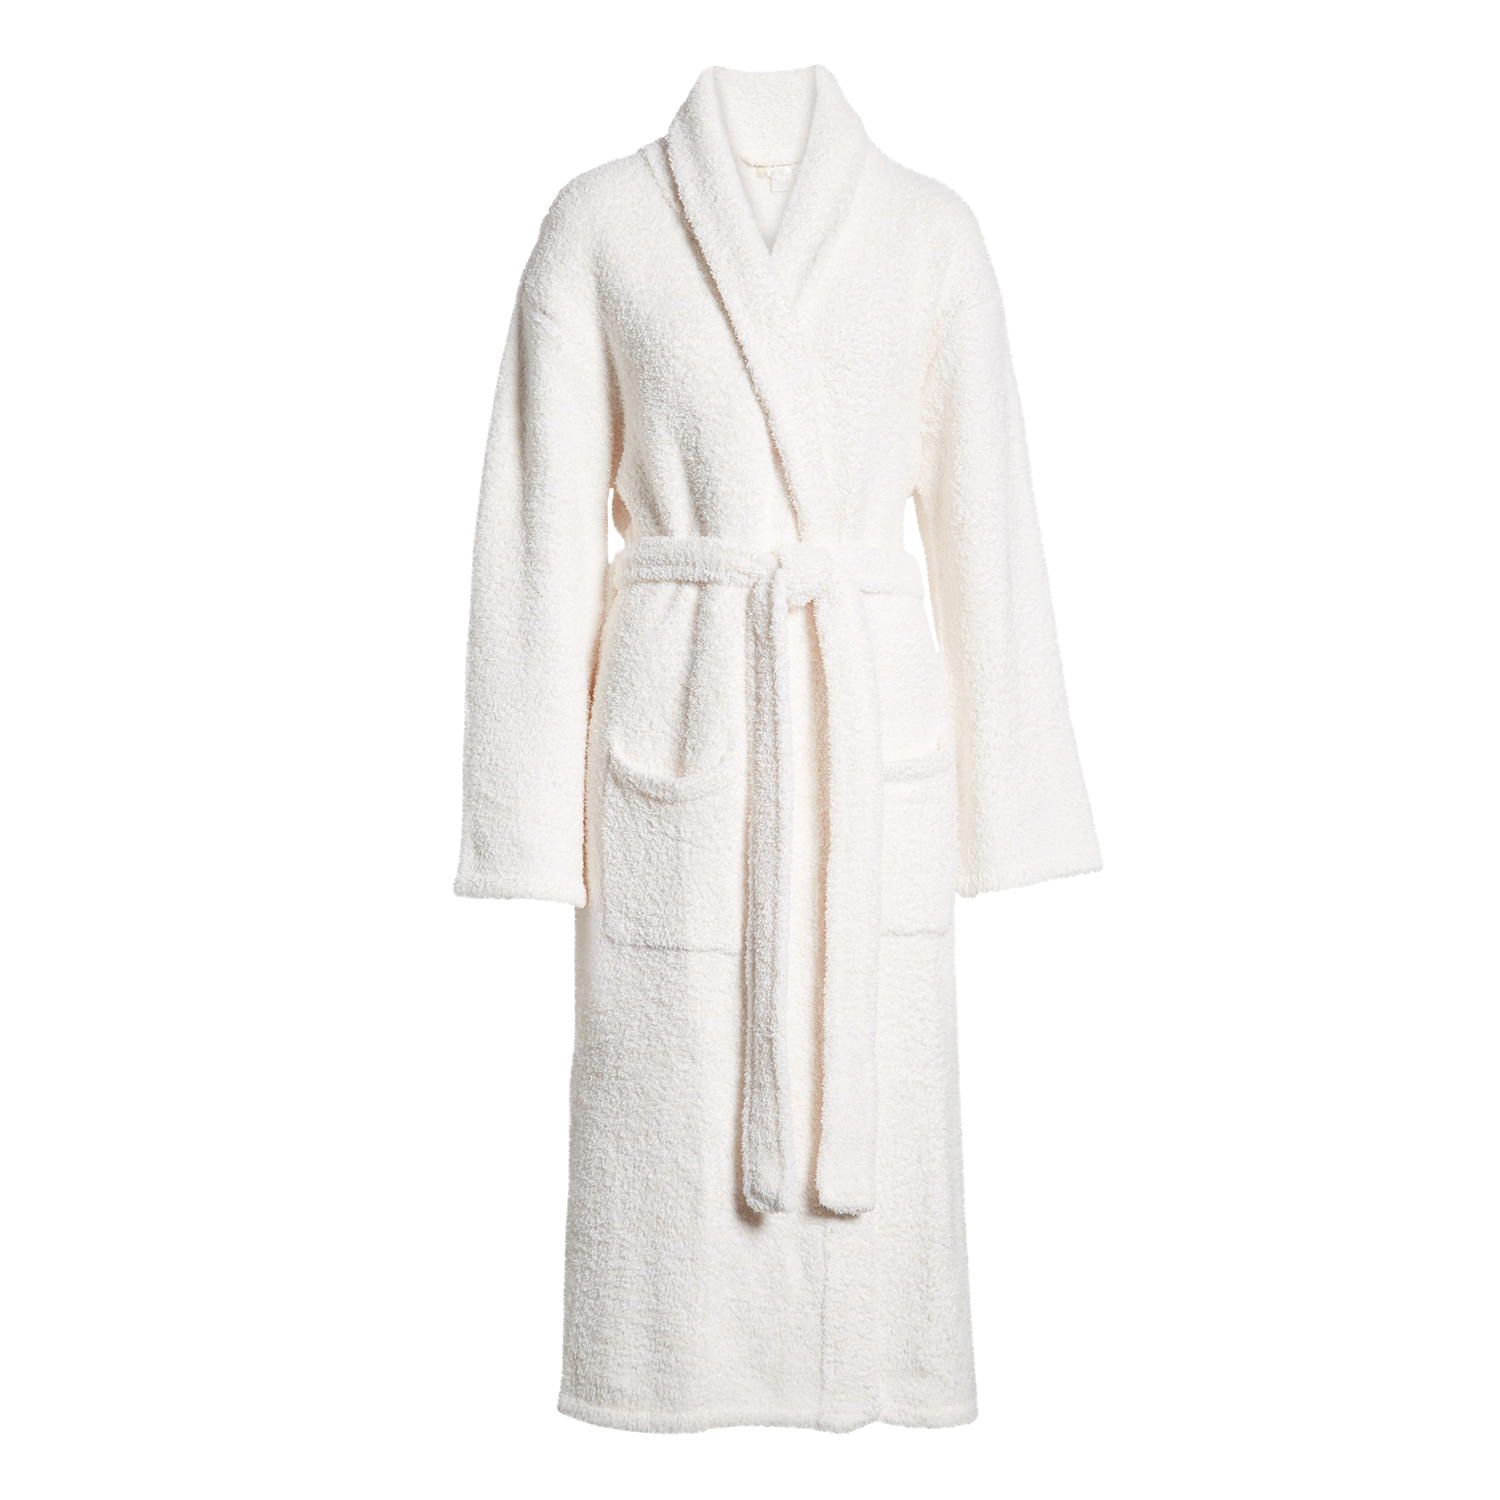 CozyChic Unisex Robe Barefoot Dreams Cream White